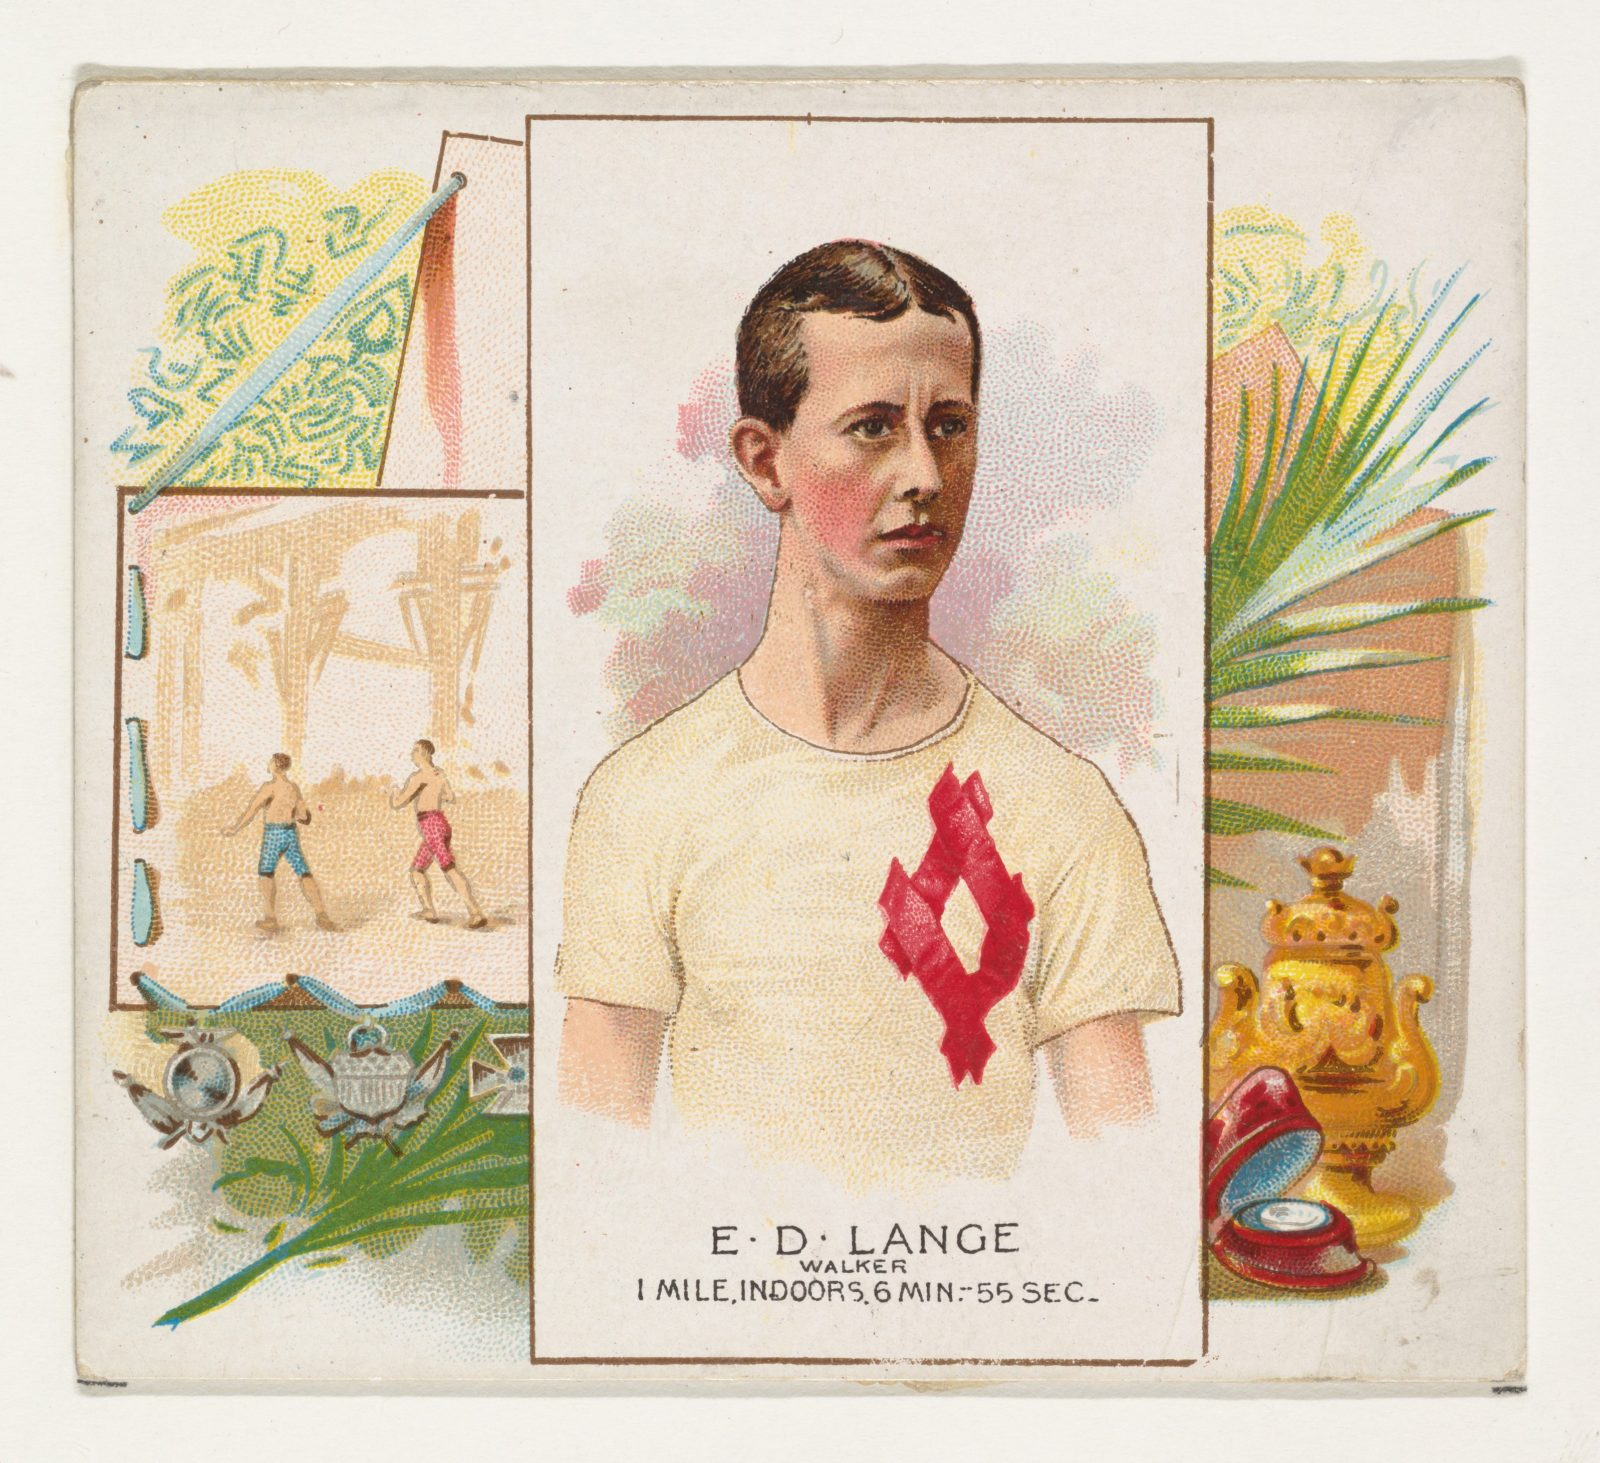 E.D. Lange, Walker, from World's Champions, Second Series (N43) for Allen & Ginter Cigarettes